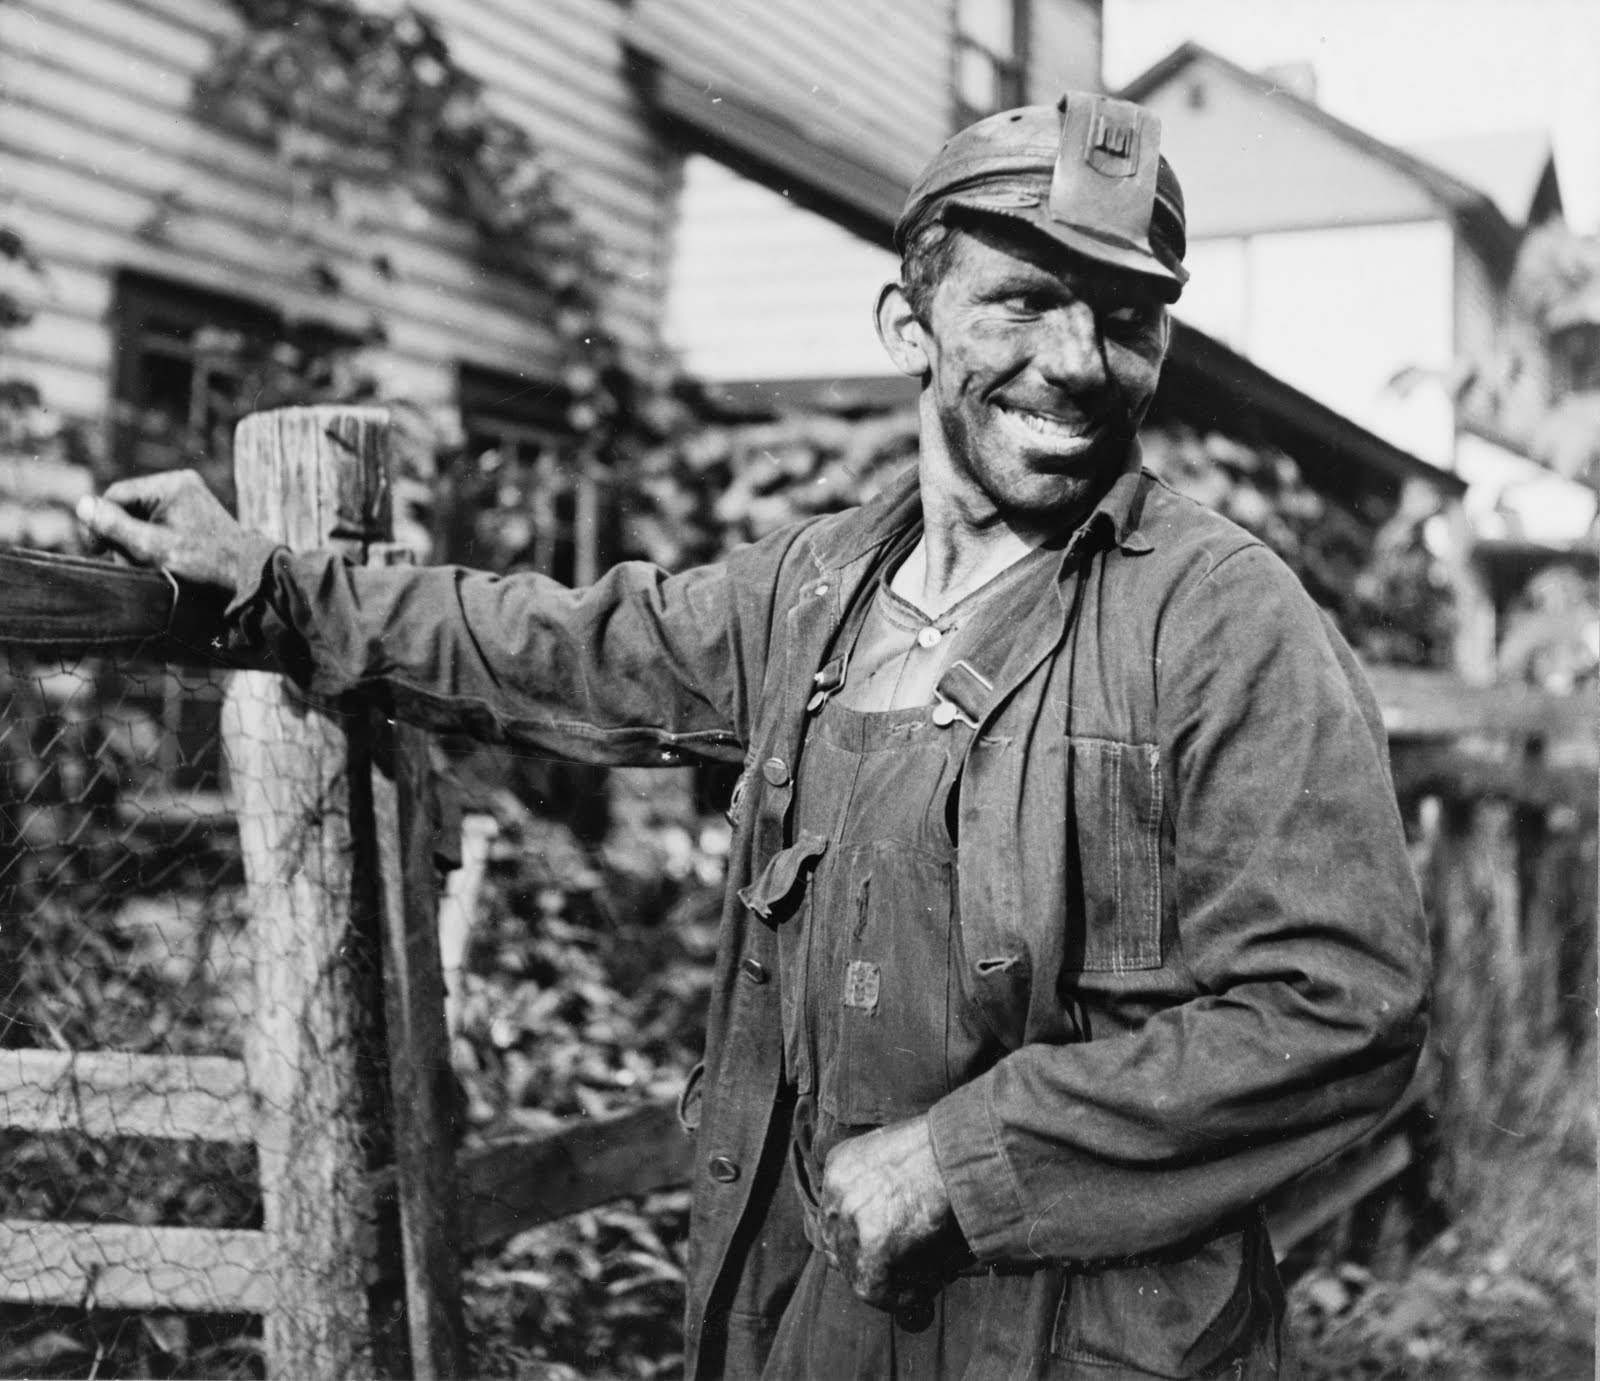 Coal Miner, Capels, West Virginia